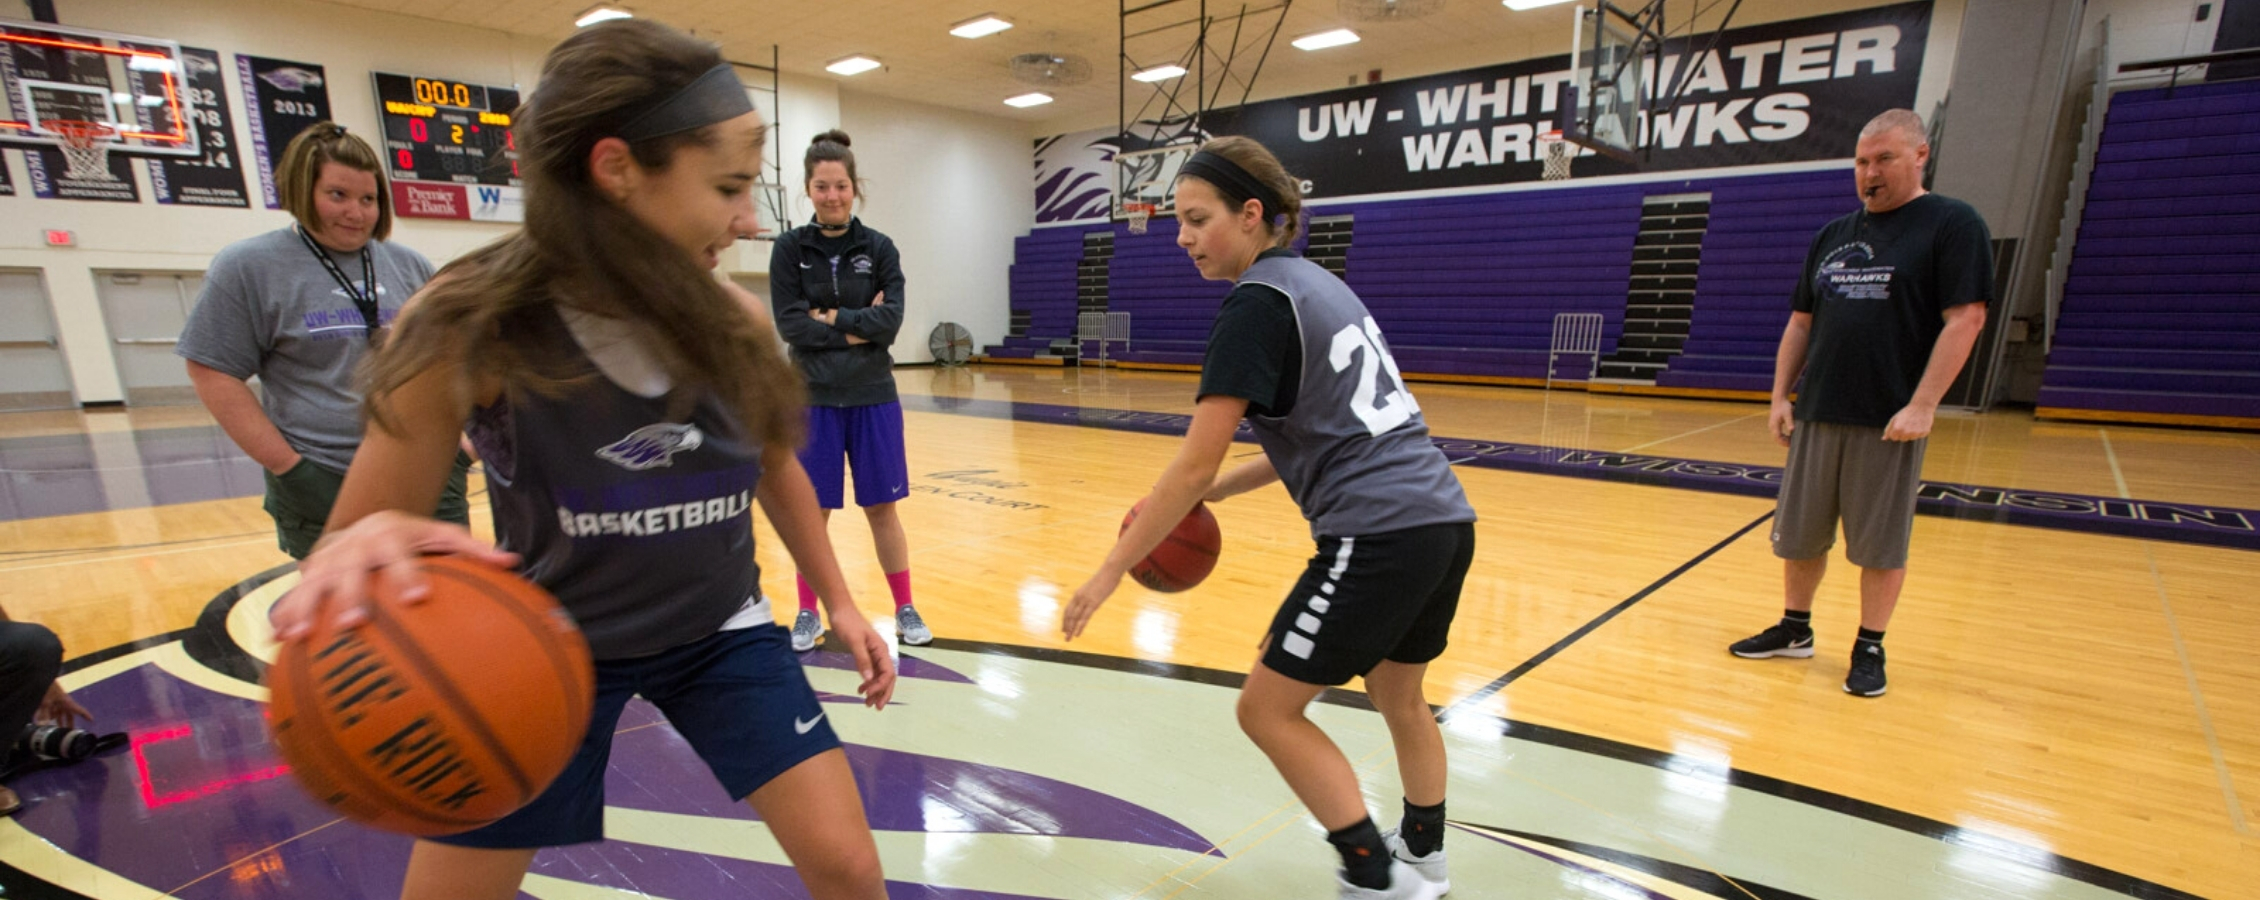 Train at UW-Whitewater and gain the skills to be a better player